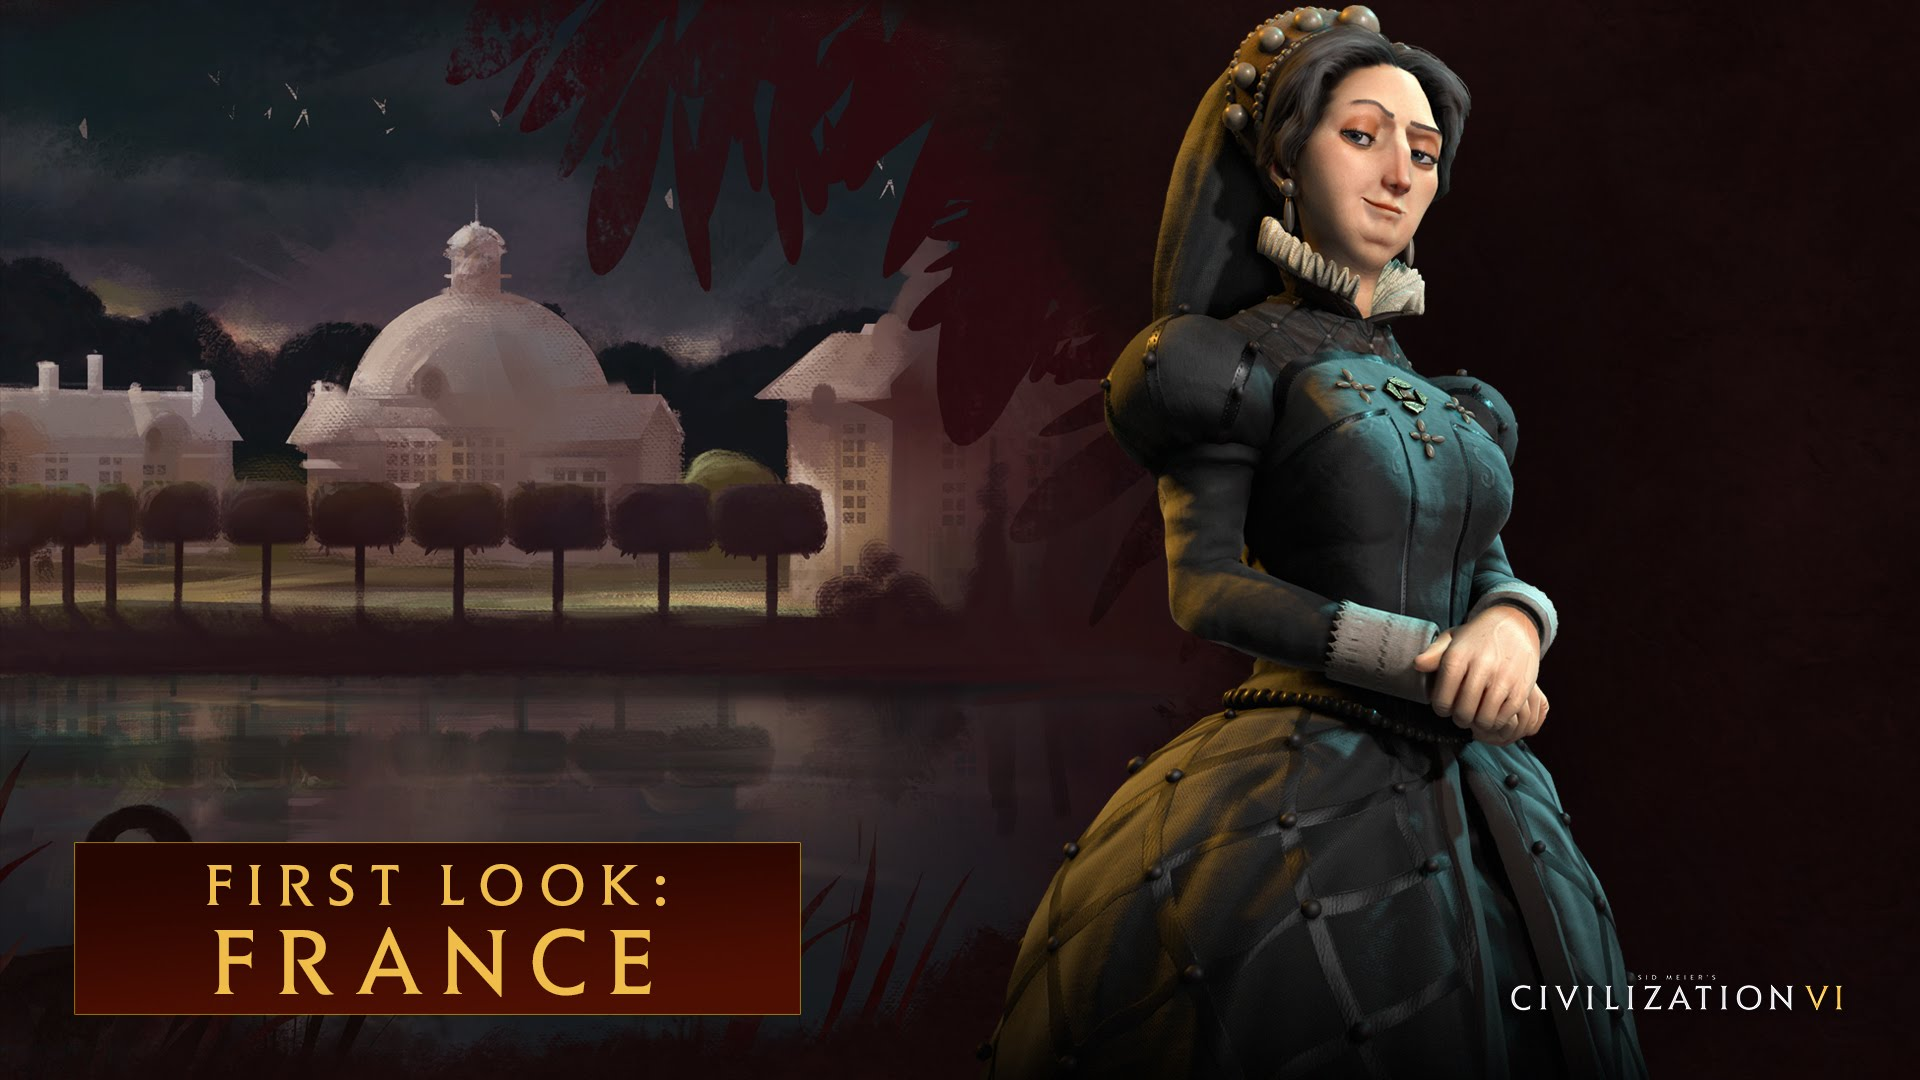 CIVILIZATION VI - First Look: France